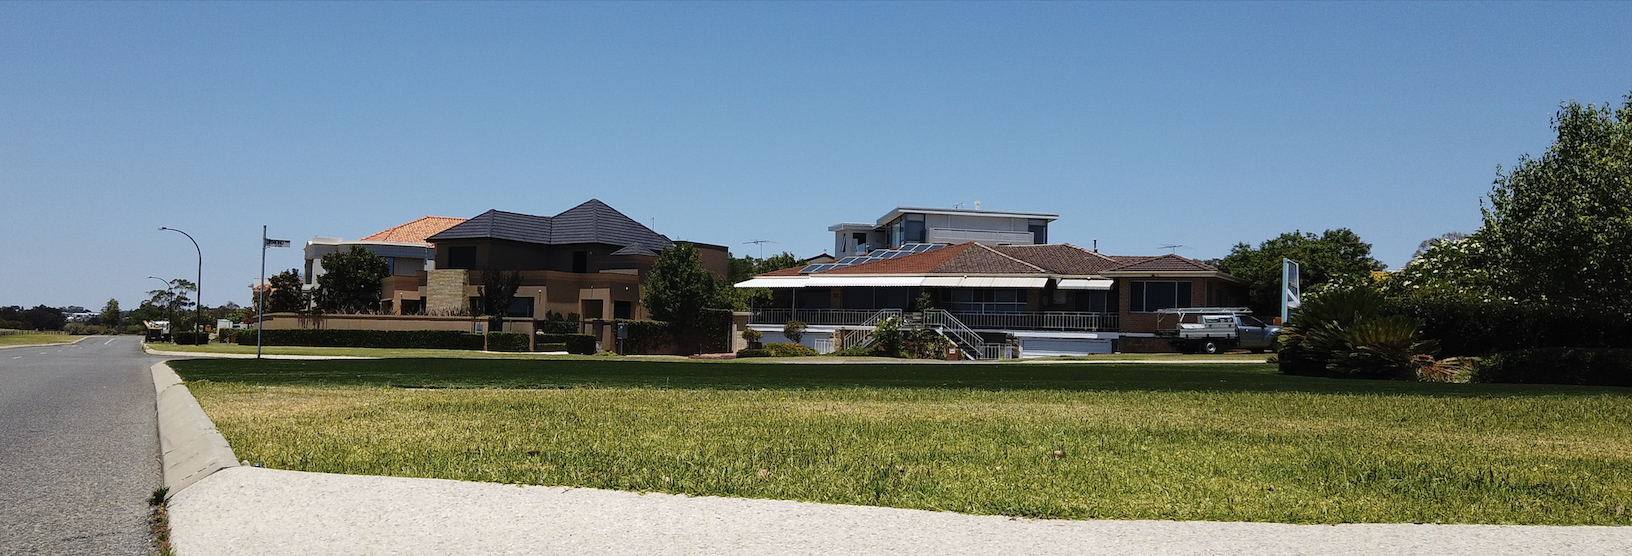 River side houses in Attadale near Perth Western Australia.